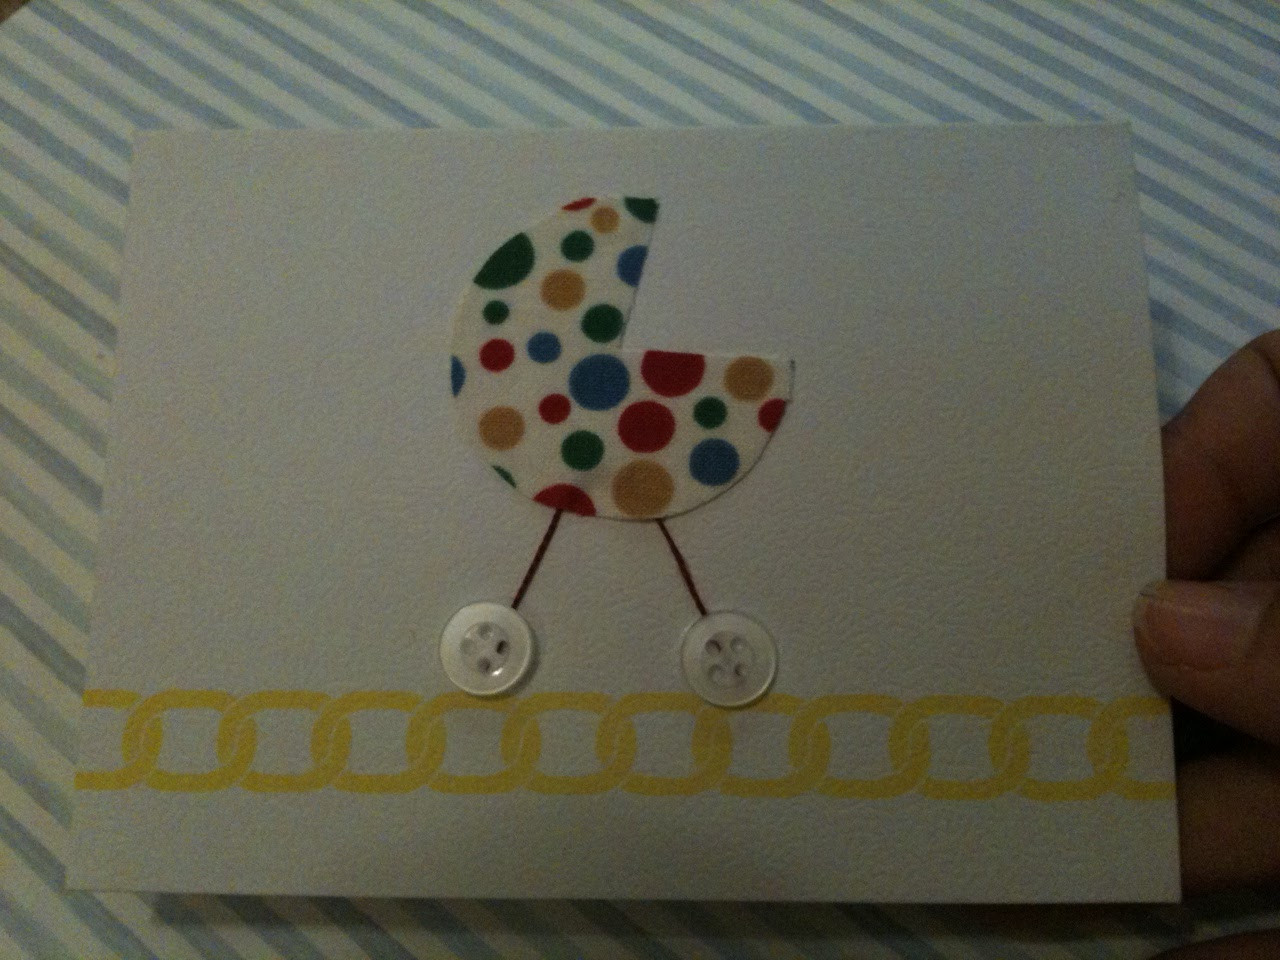 Best ideas about DIY Baby Shower Cards . Save or Pin Glitter Glue GLAM DIY Baby Shower Card Now.